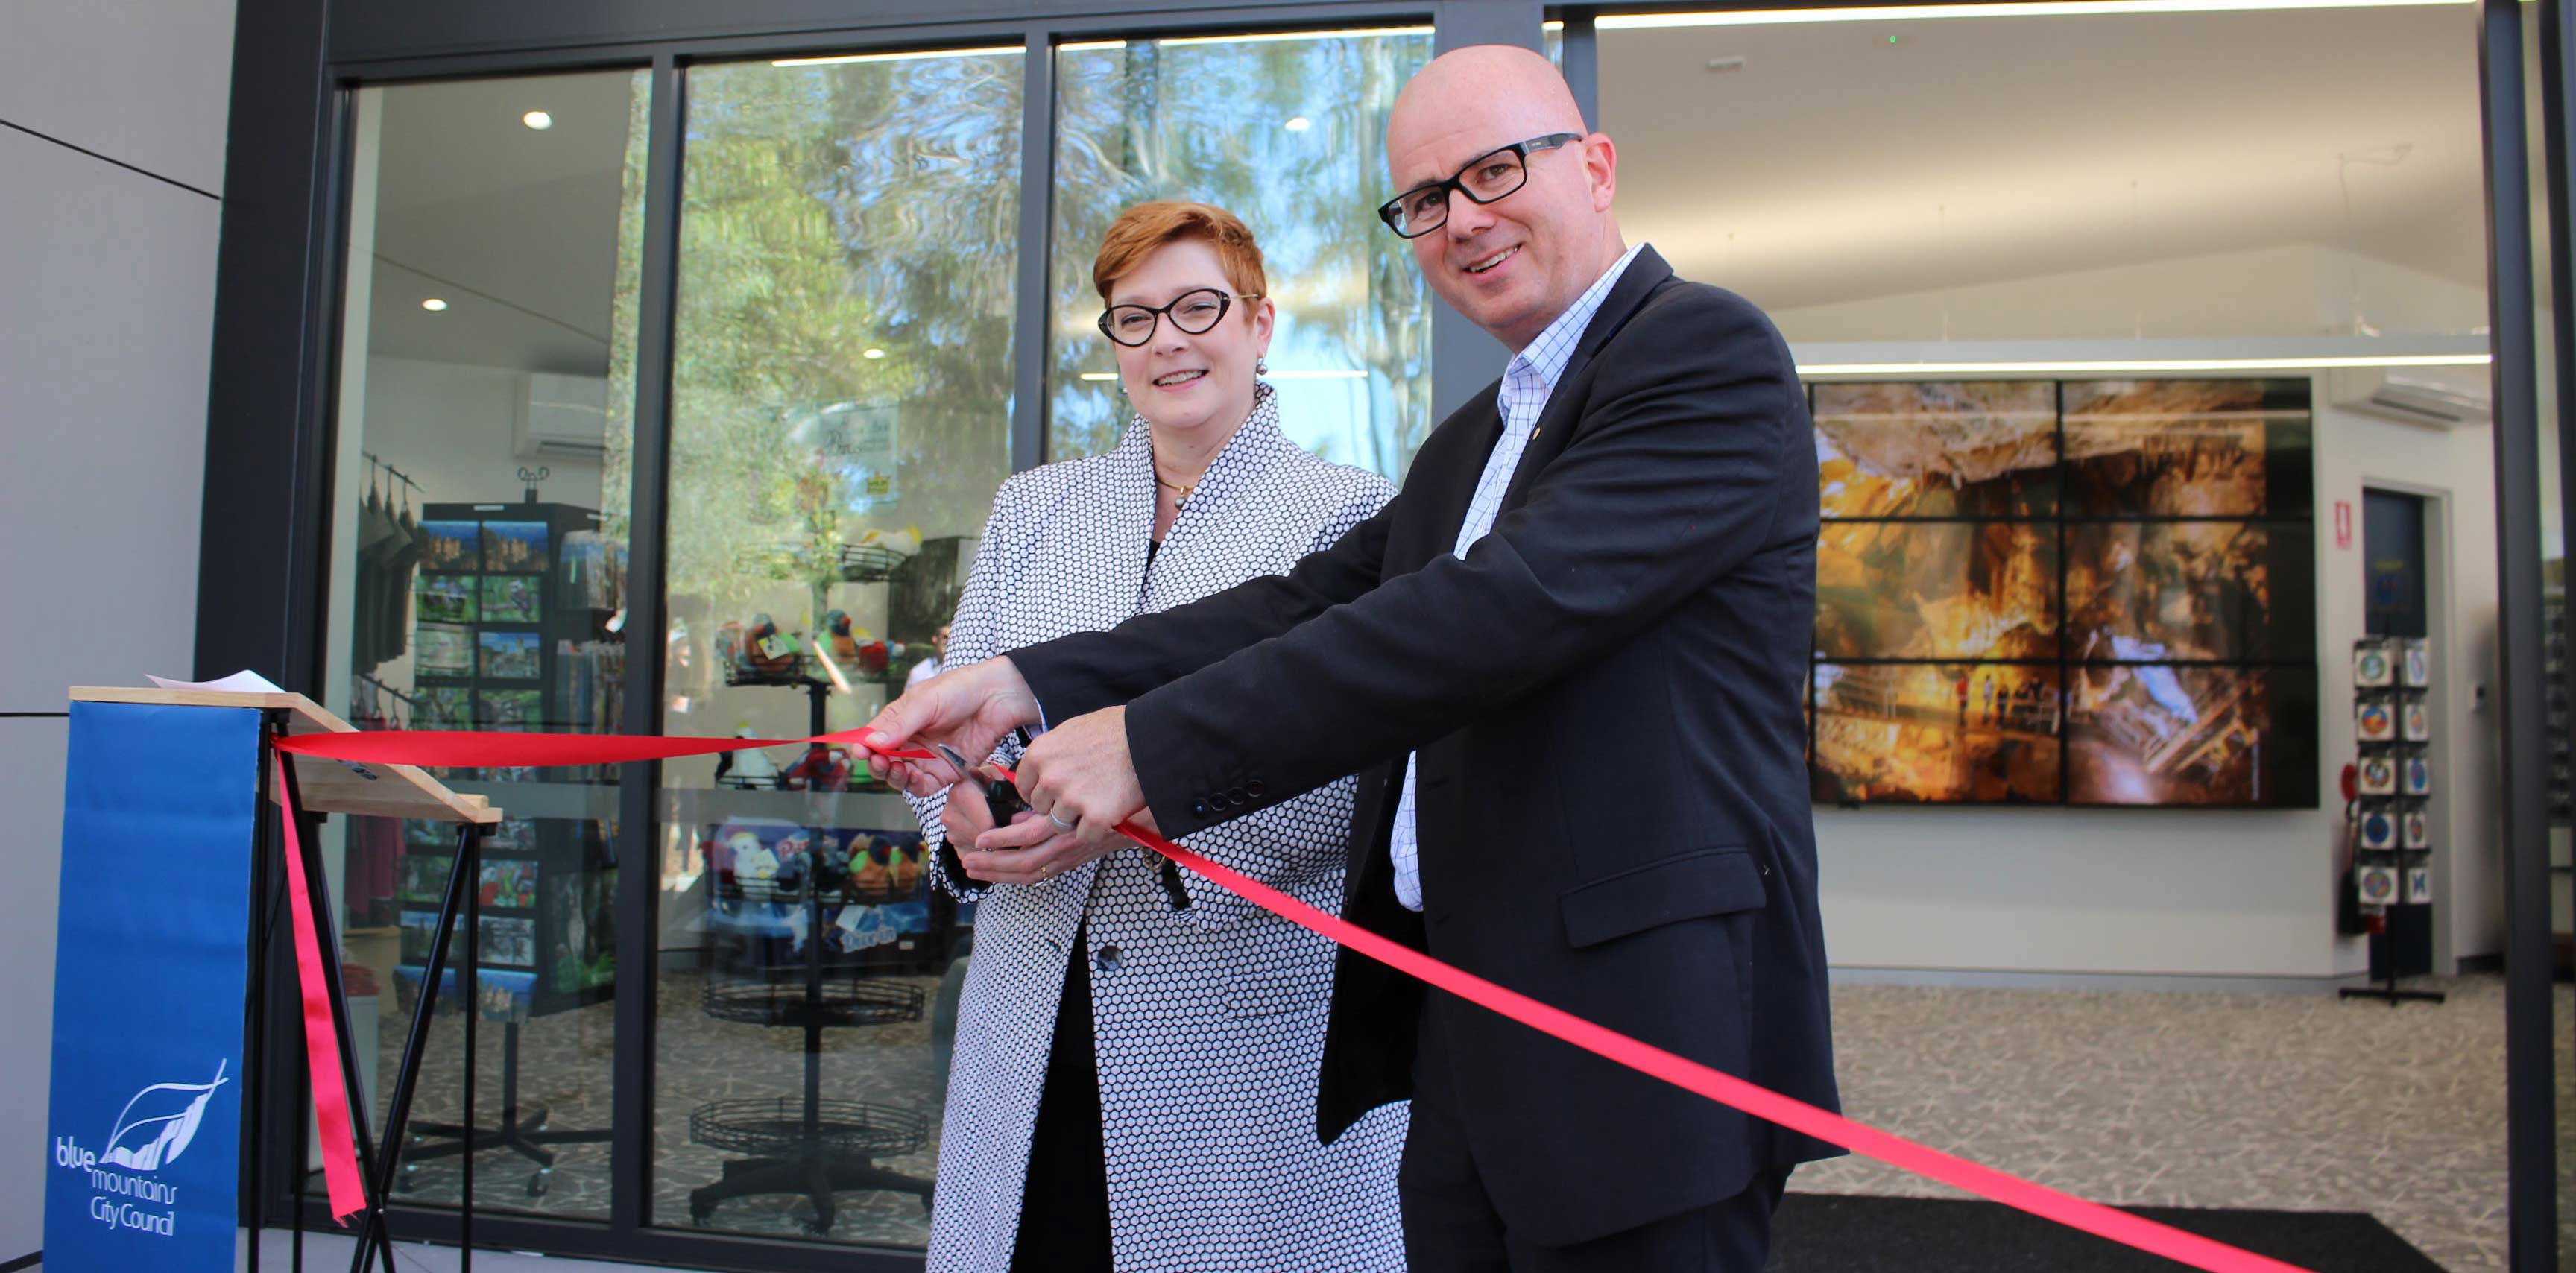 Mayor, Cr Mark Greenhill is joined by Senator Marise Payne, to official open the new, jointly funded, Blue Mountains Visitor Information Centre at Glenbrook.